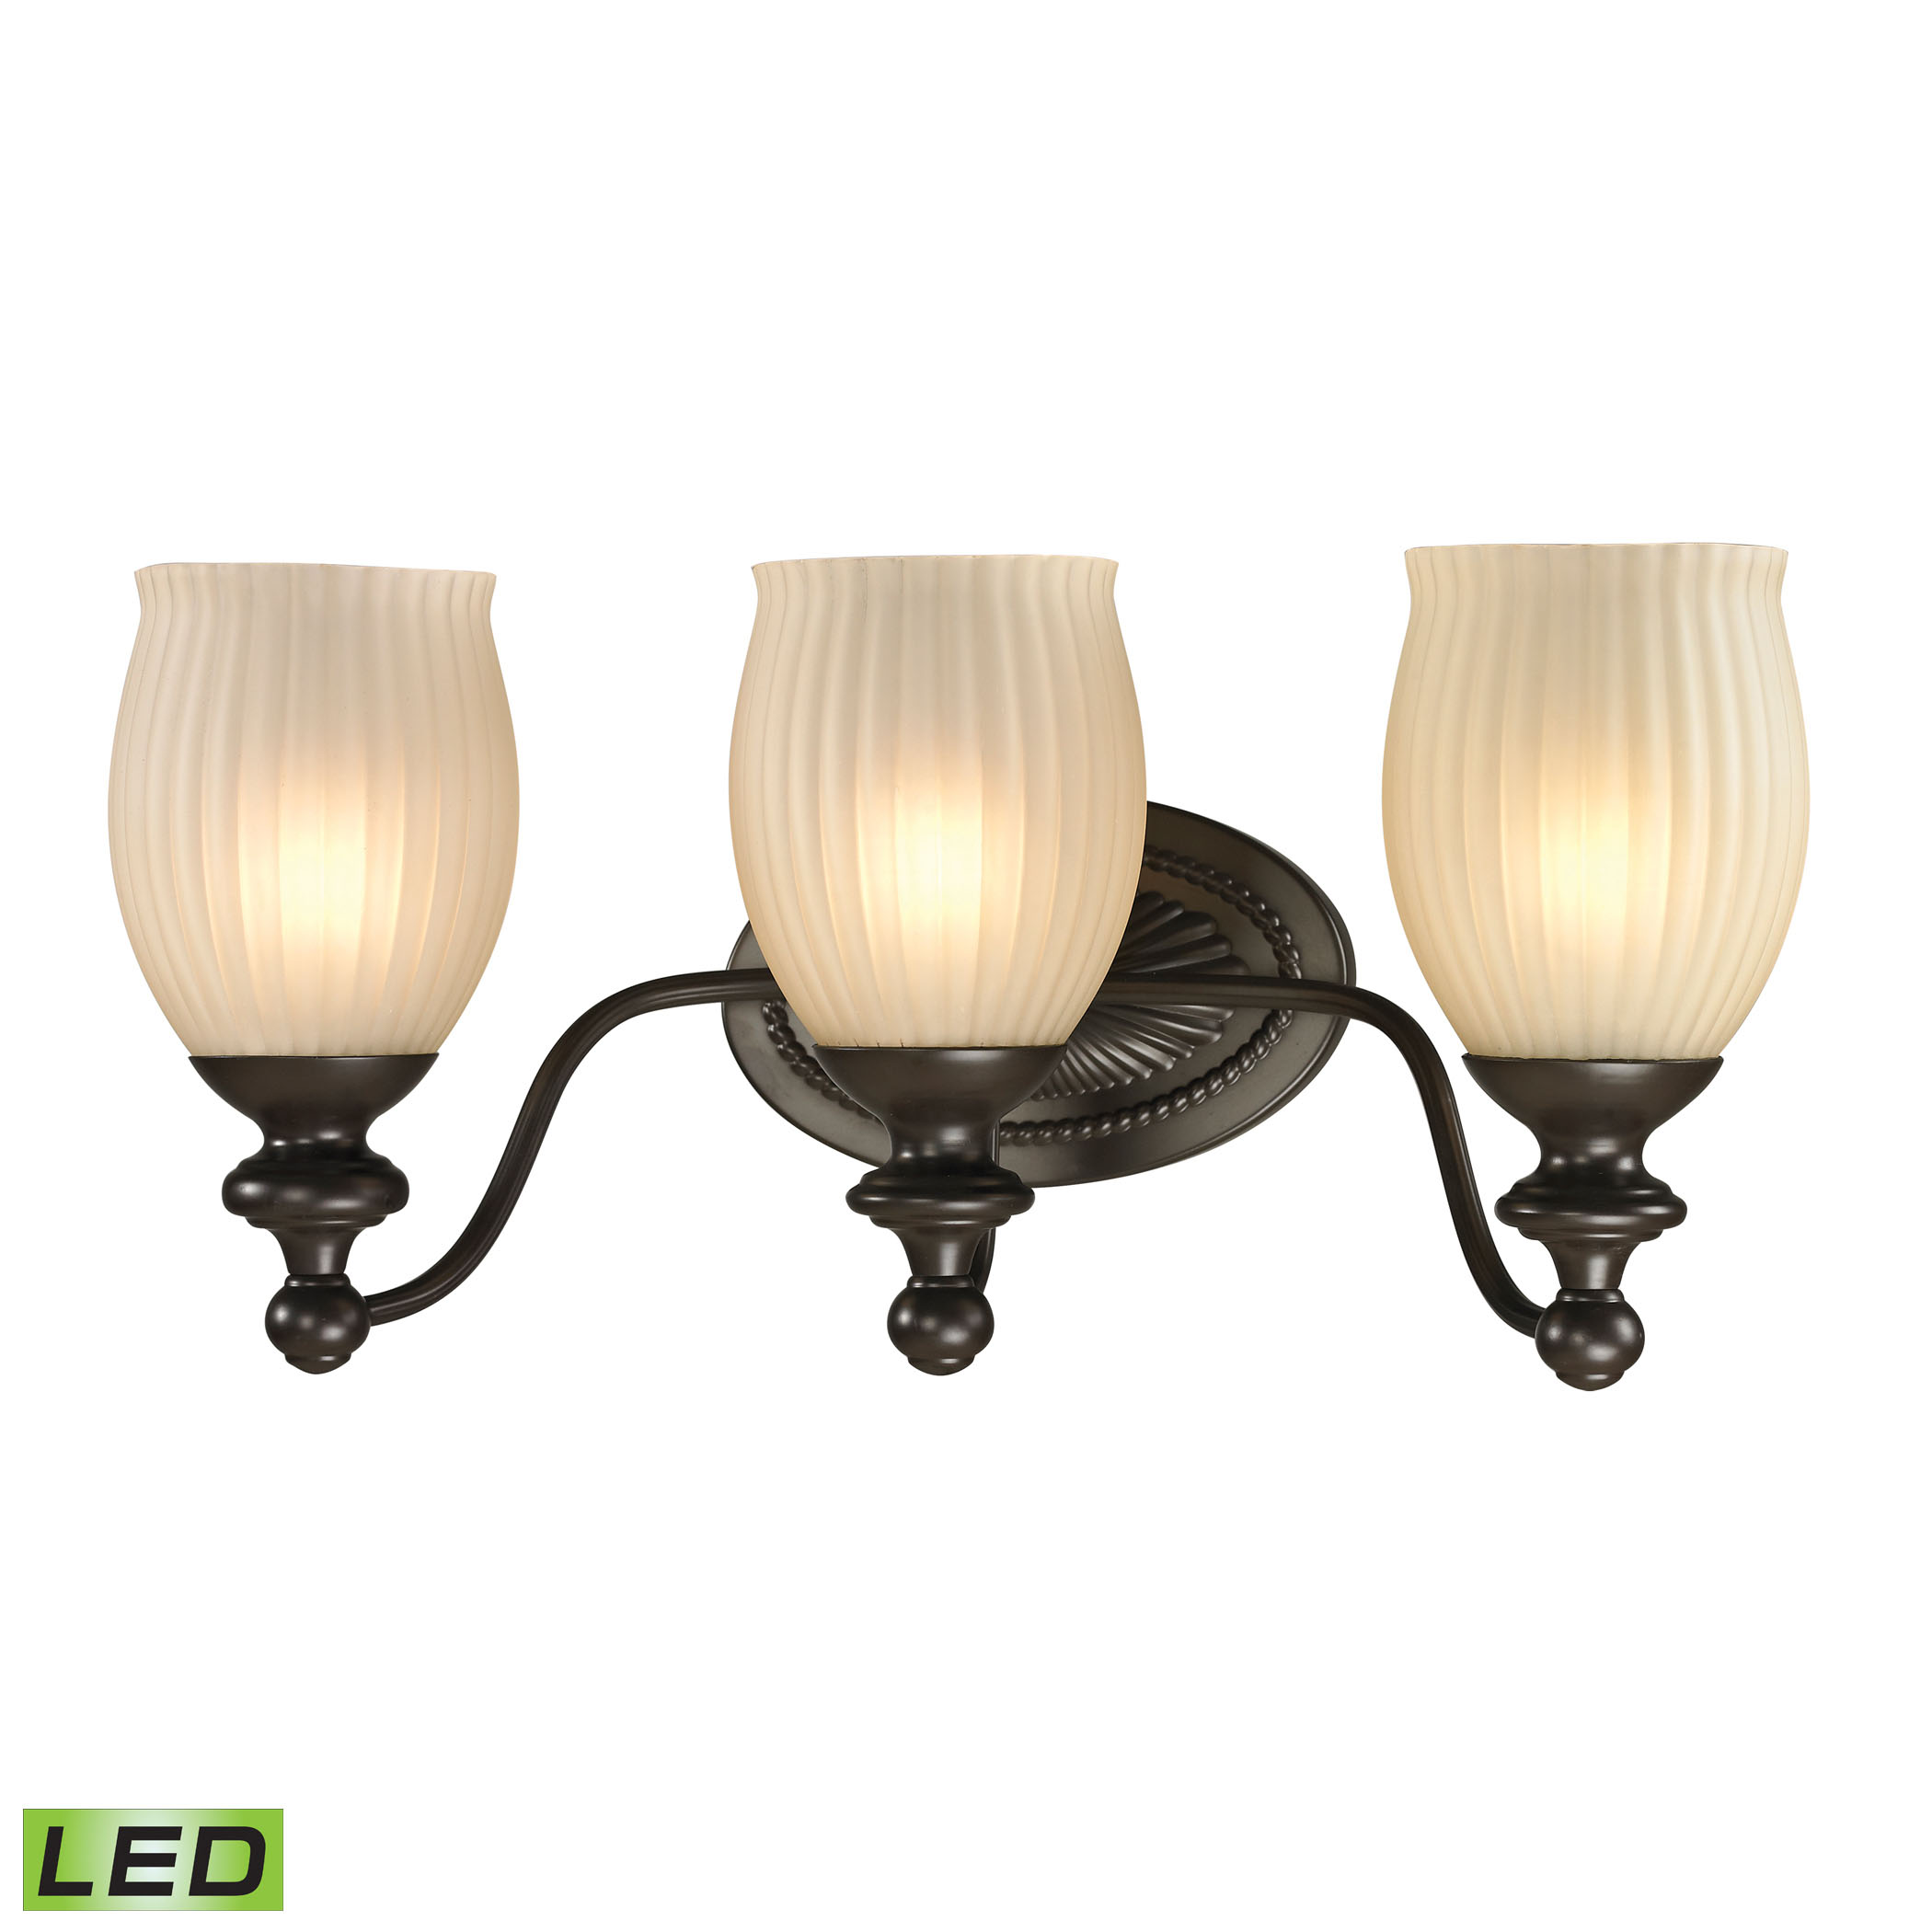 Park Ridge Collection 3 Light Bath in Oil Rubbed Bronze - LED, 800 Lumens (2400 Lumens Total) with F